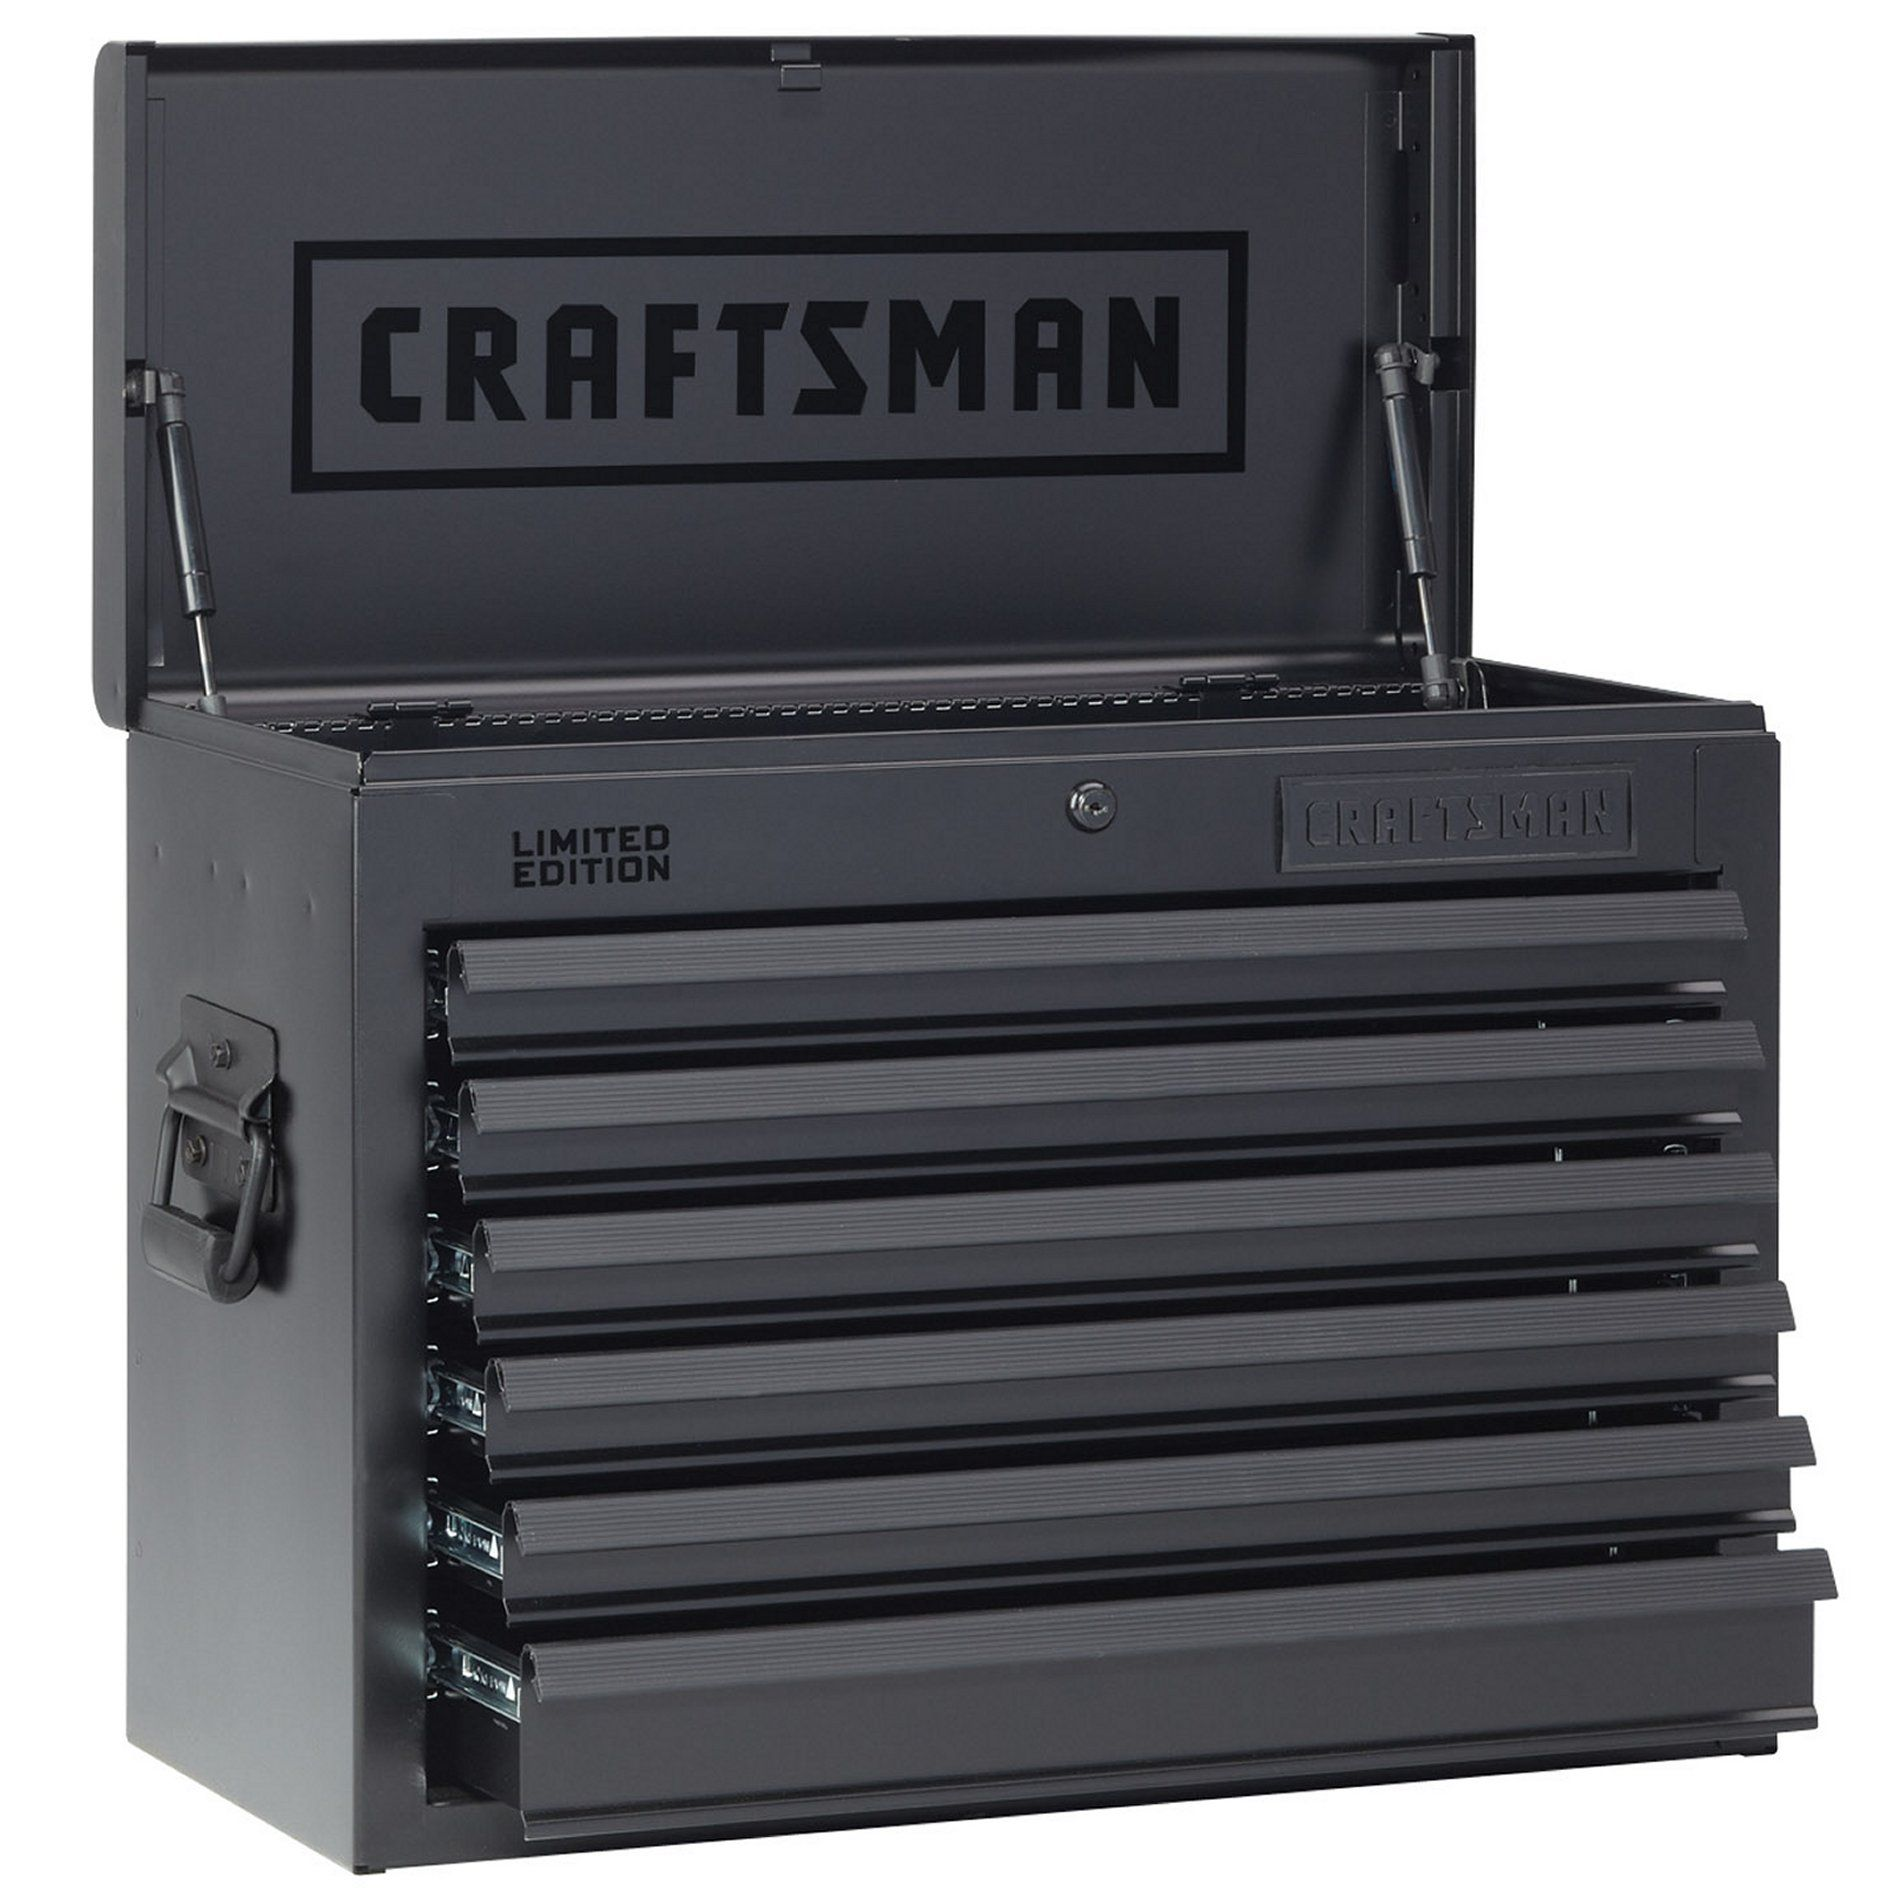 Craftsman 26 In Wide 6 Drawer Heavy Duty Top Chest Flat Black